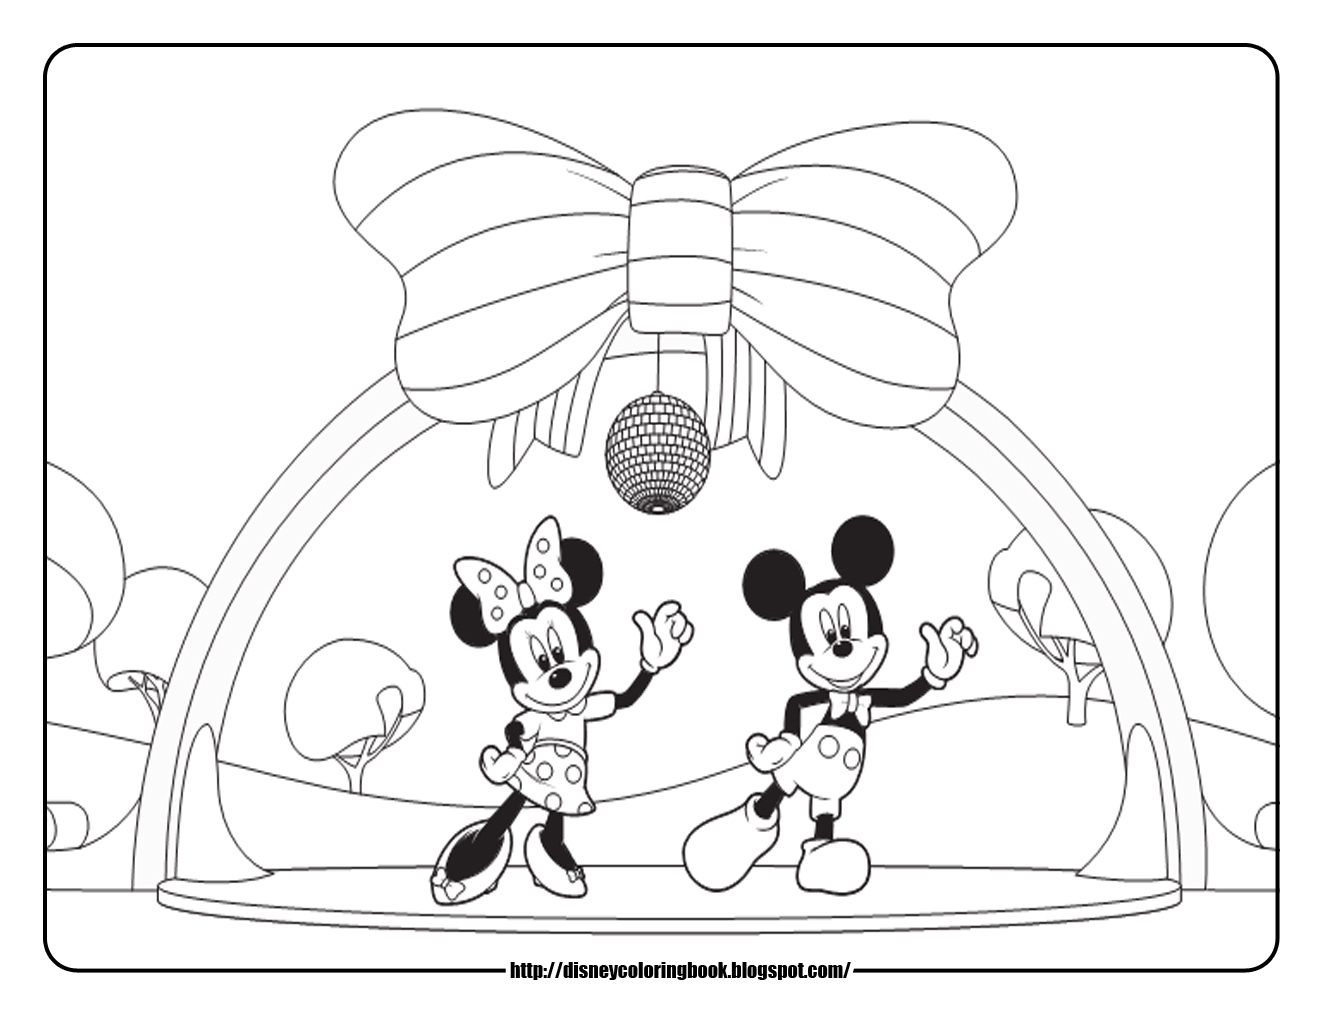 1320x1020 Disney Coloring Pages And Sheets For Kids Mickey Mouse Clubhouse